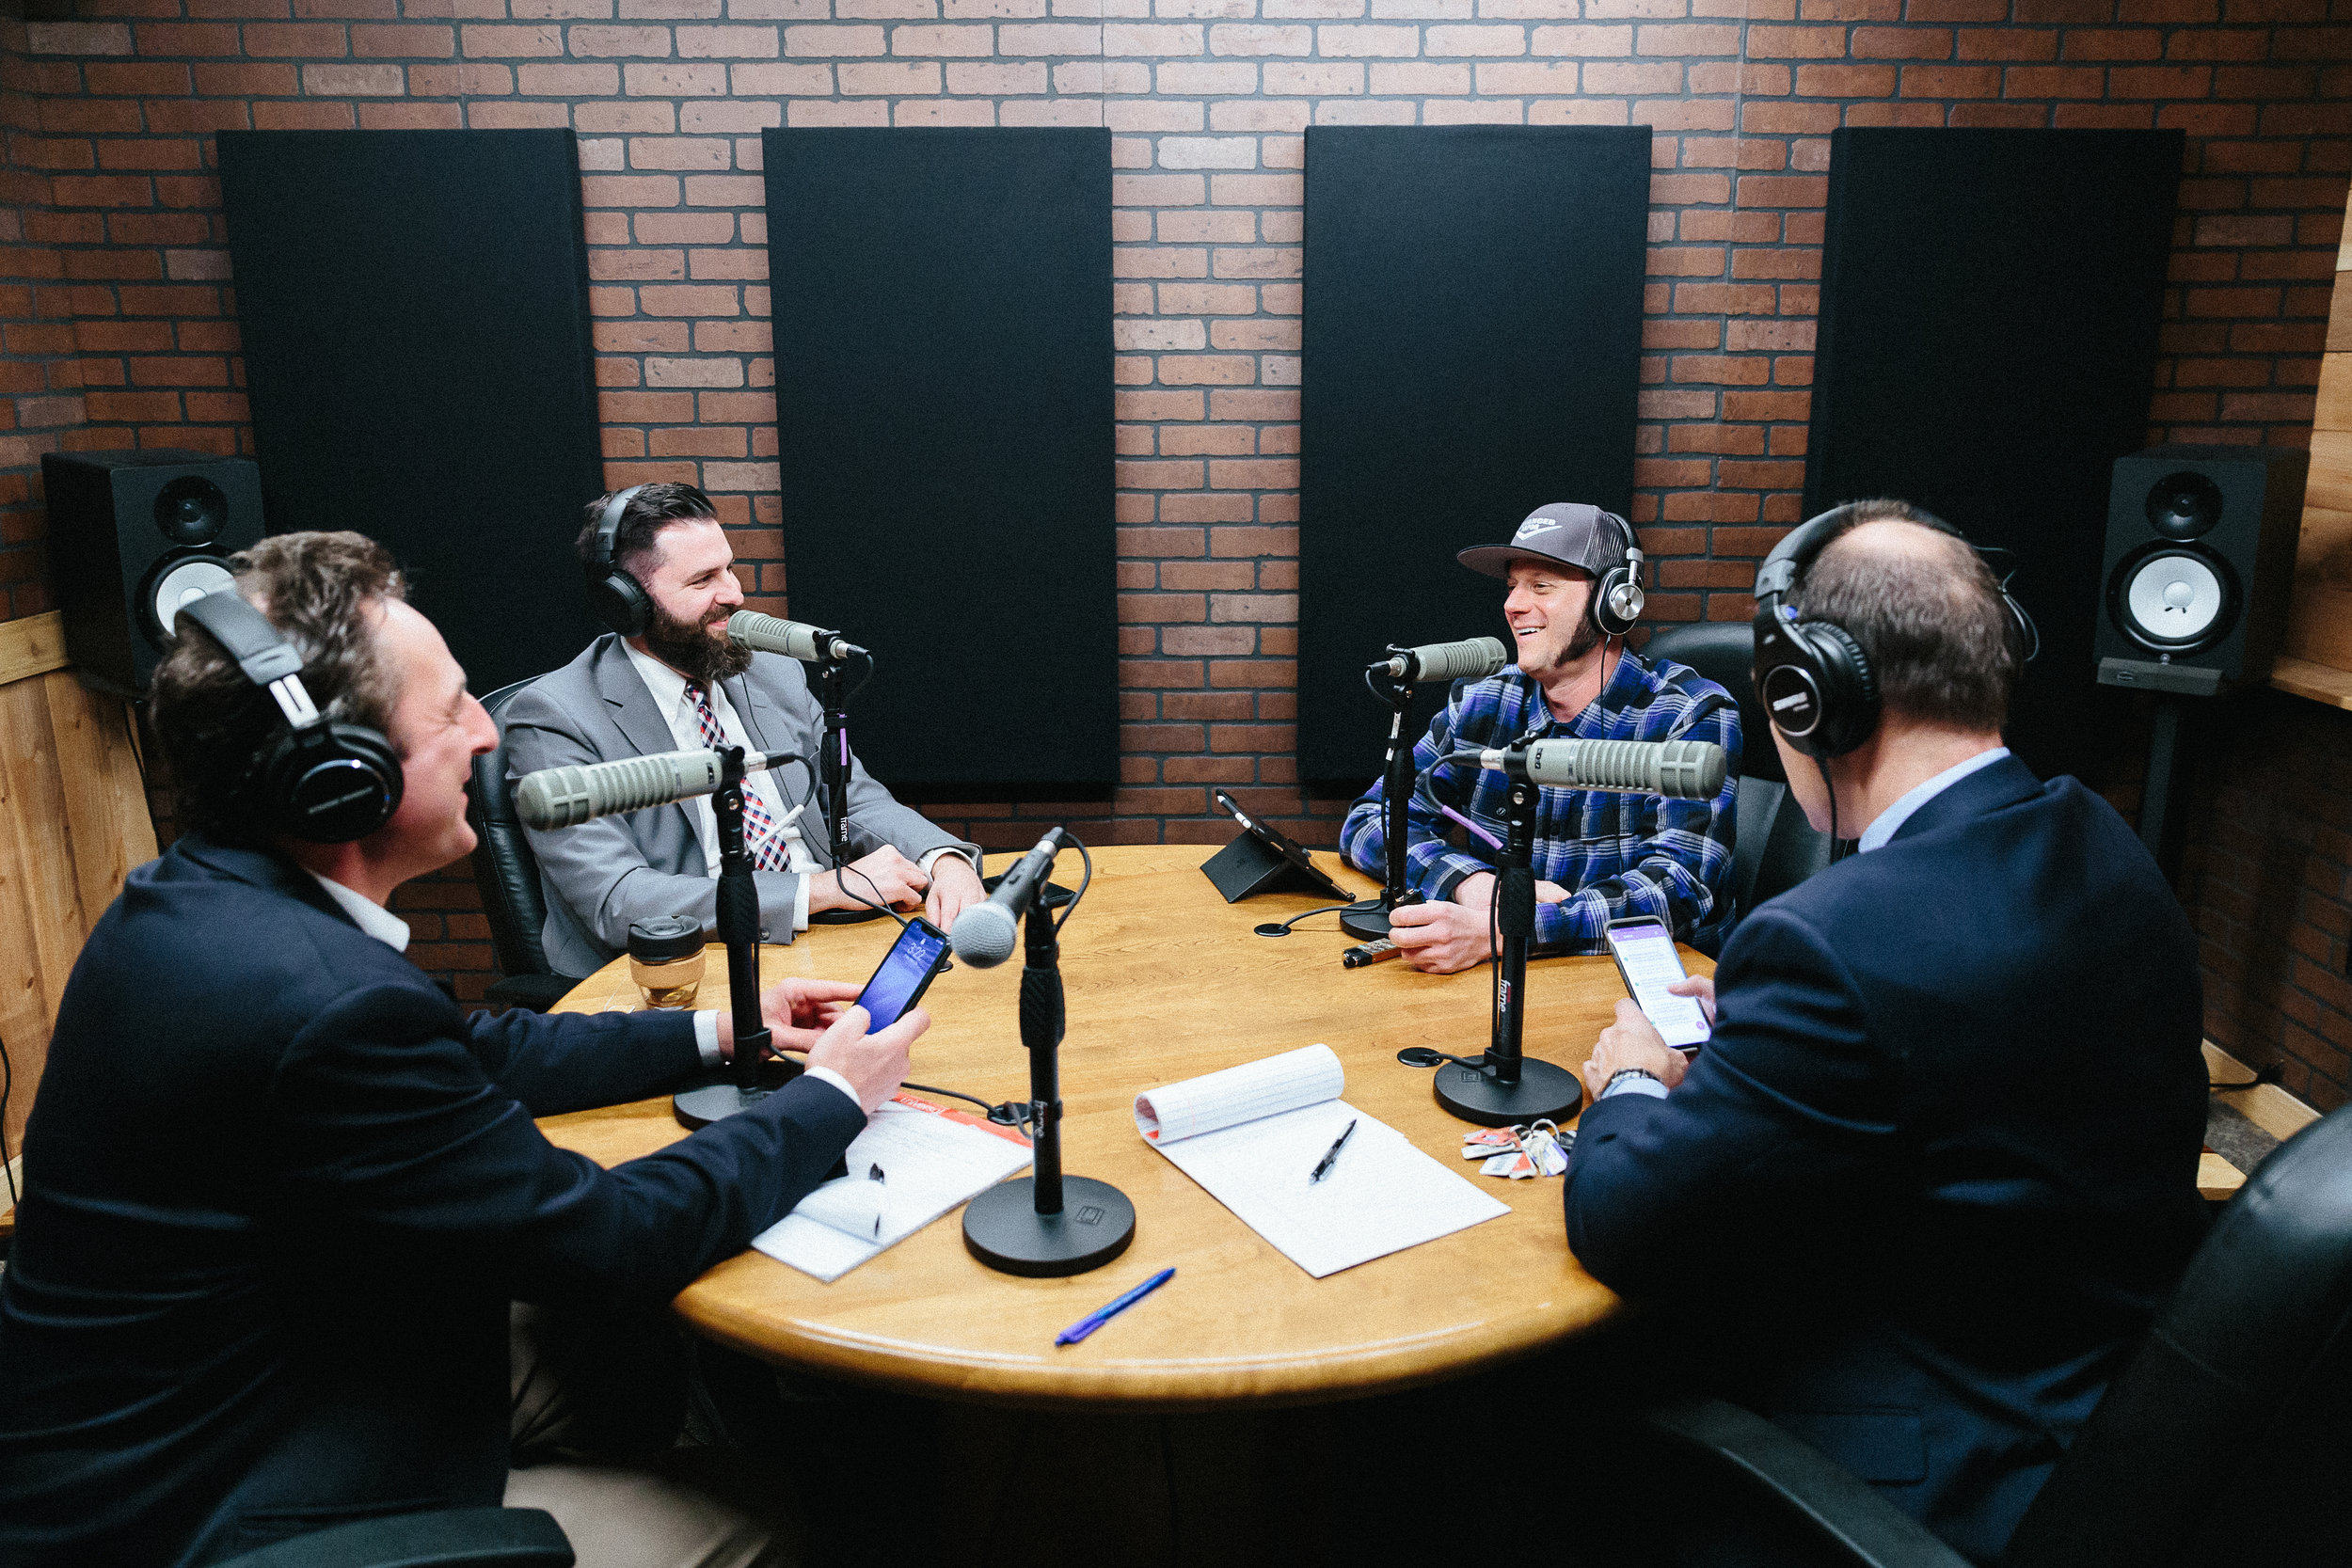 Podcasts - Want to create a professional studio-quality podcast, but don't know where to start? Let us help.